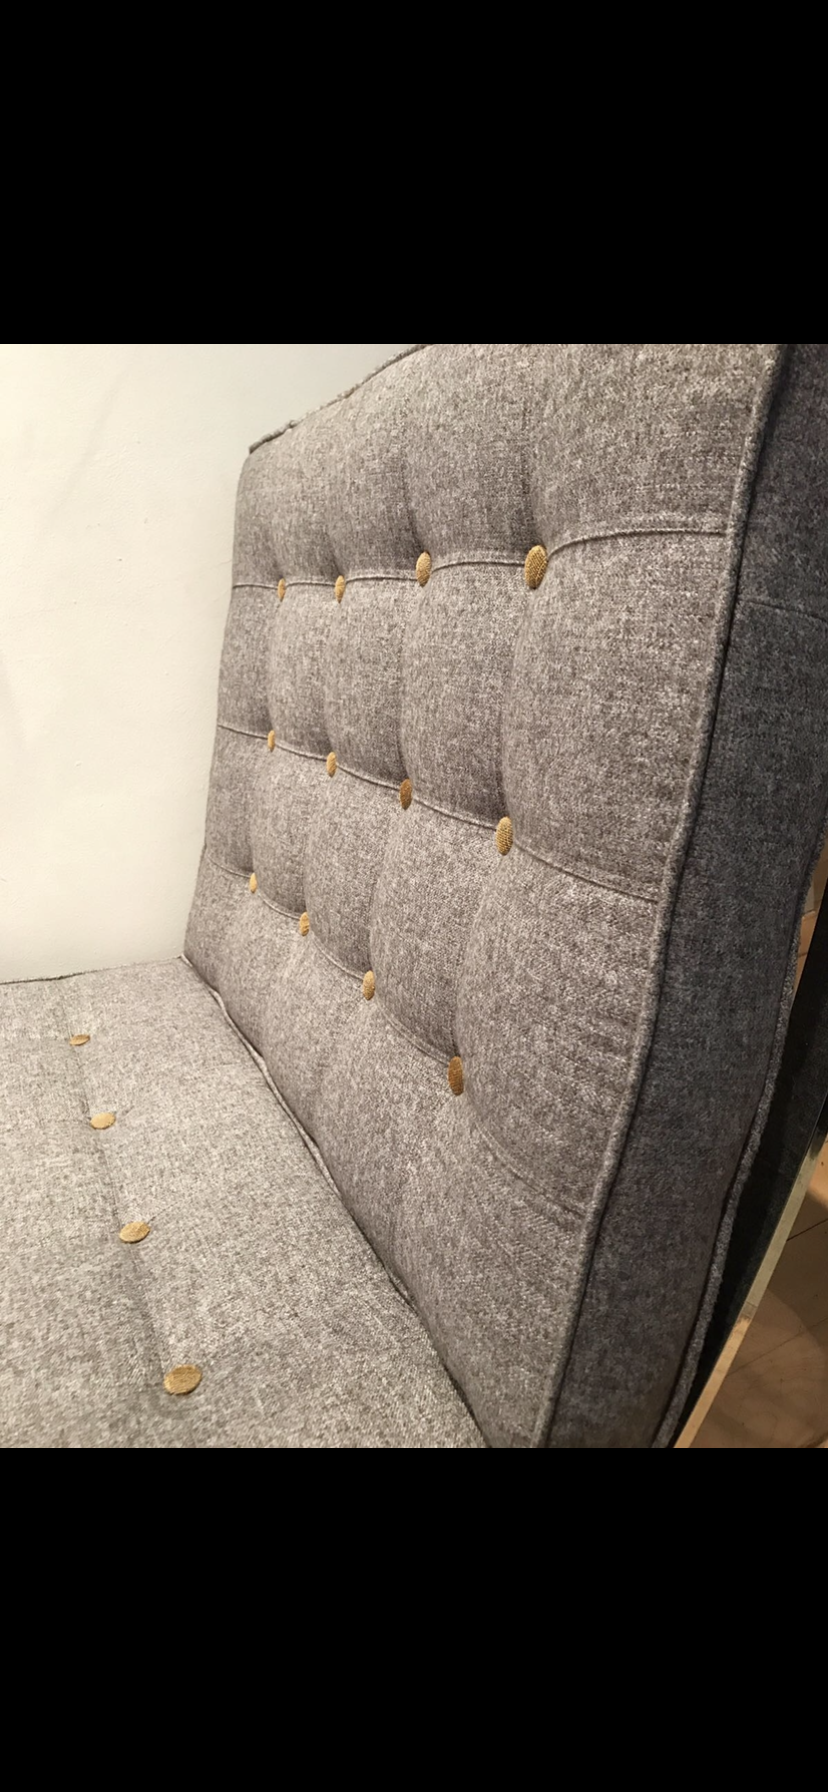 Barcelona Chair Upholstered In Grey Fabric With Contrasting